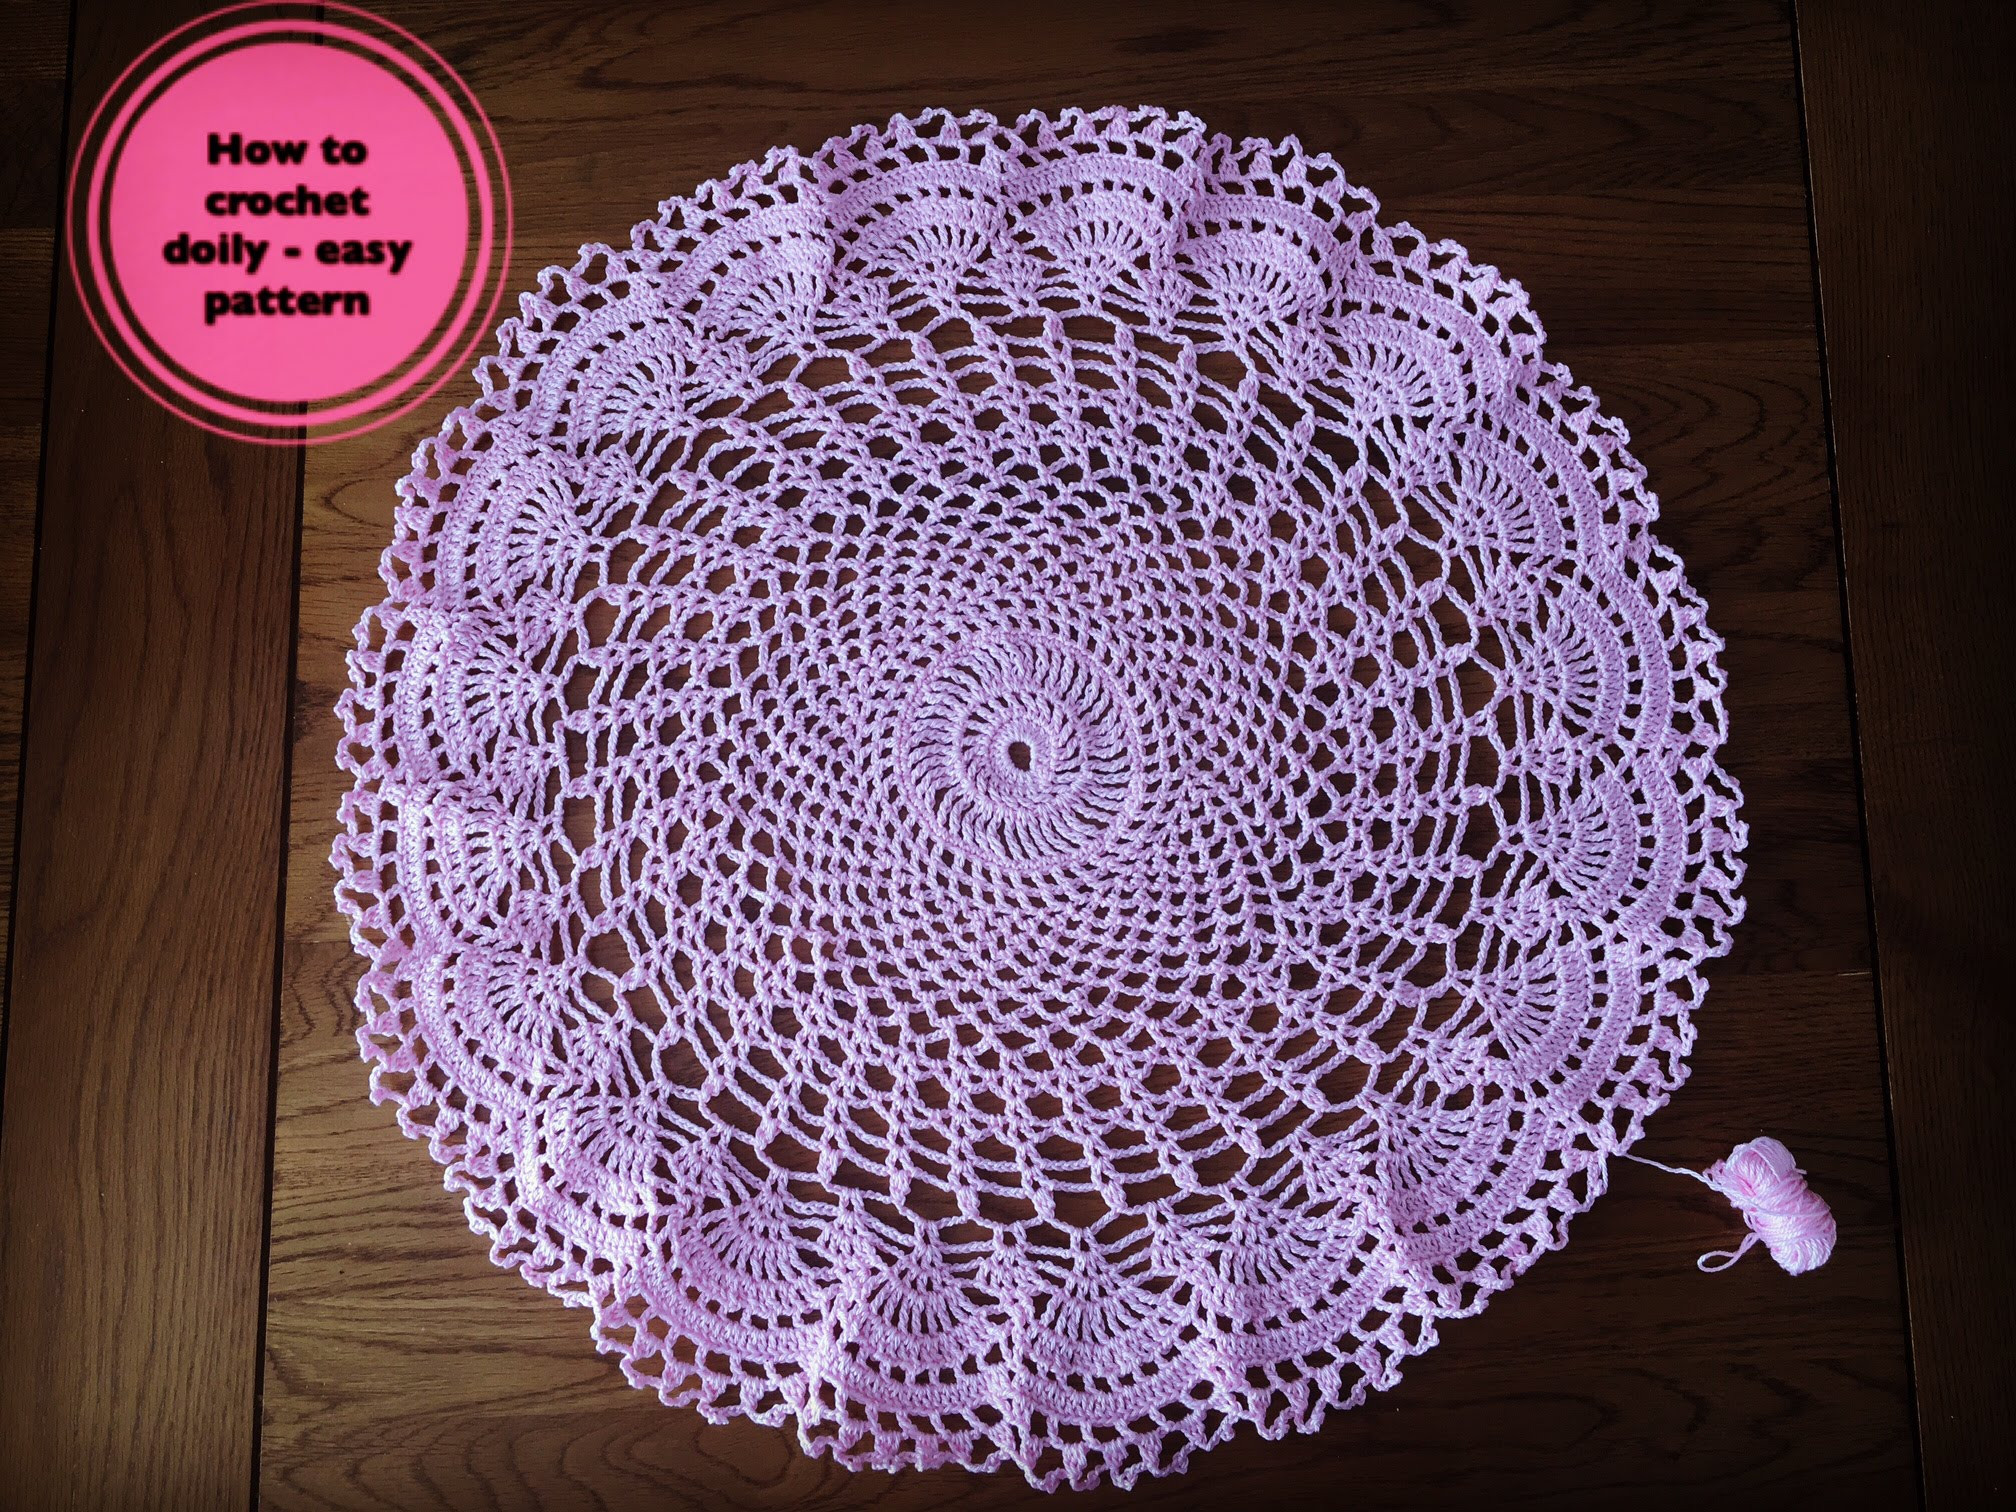 Easy Crochet Doily Inspirational why Crochet Doilies Shouldn't Miss In Your Dining Room Of New 41 Pics Easy Crochet Doily